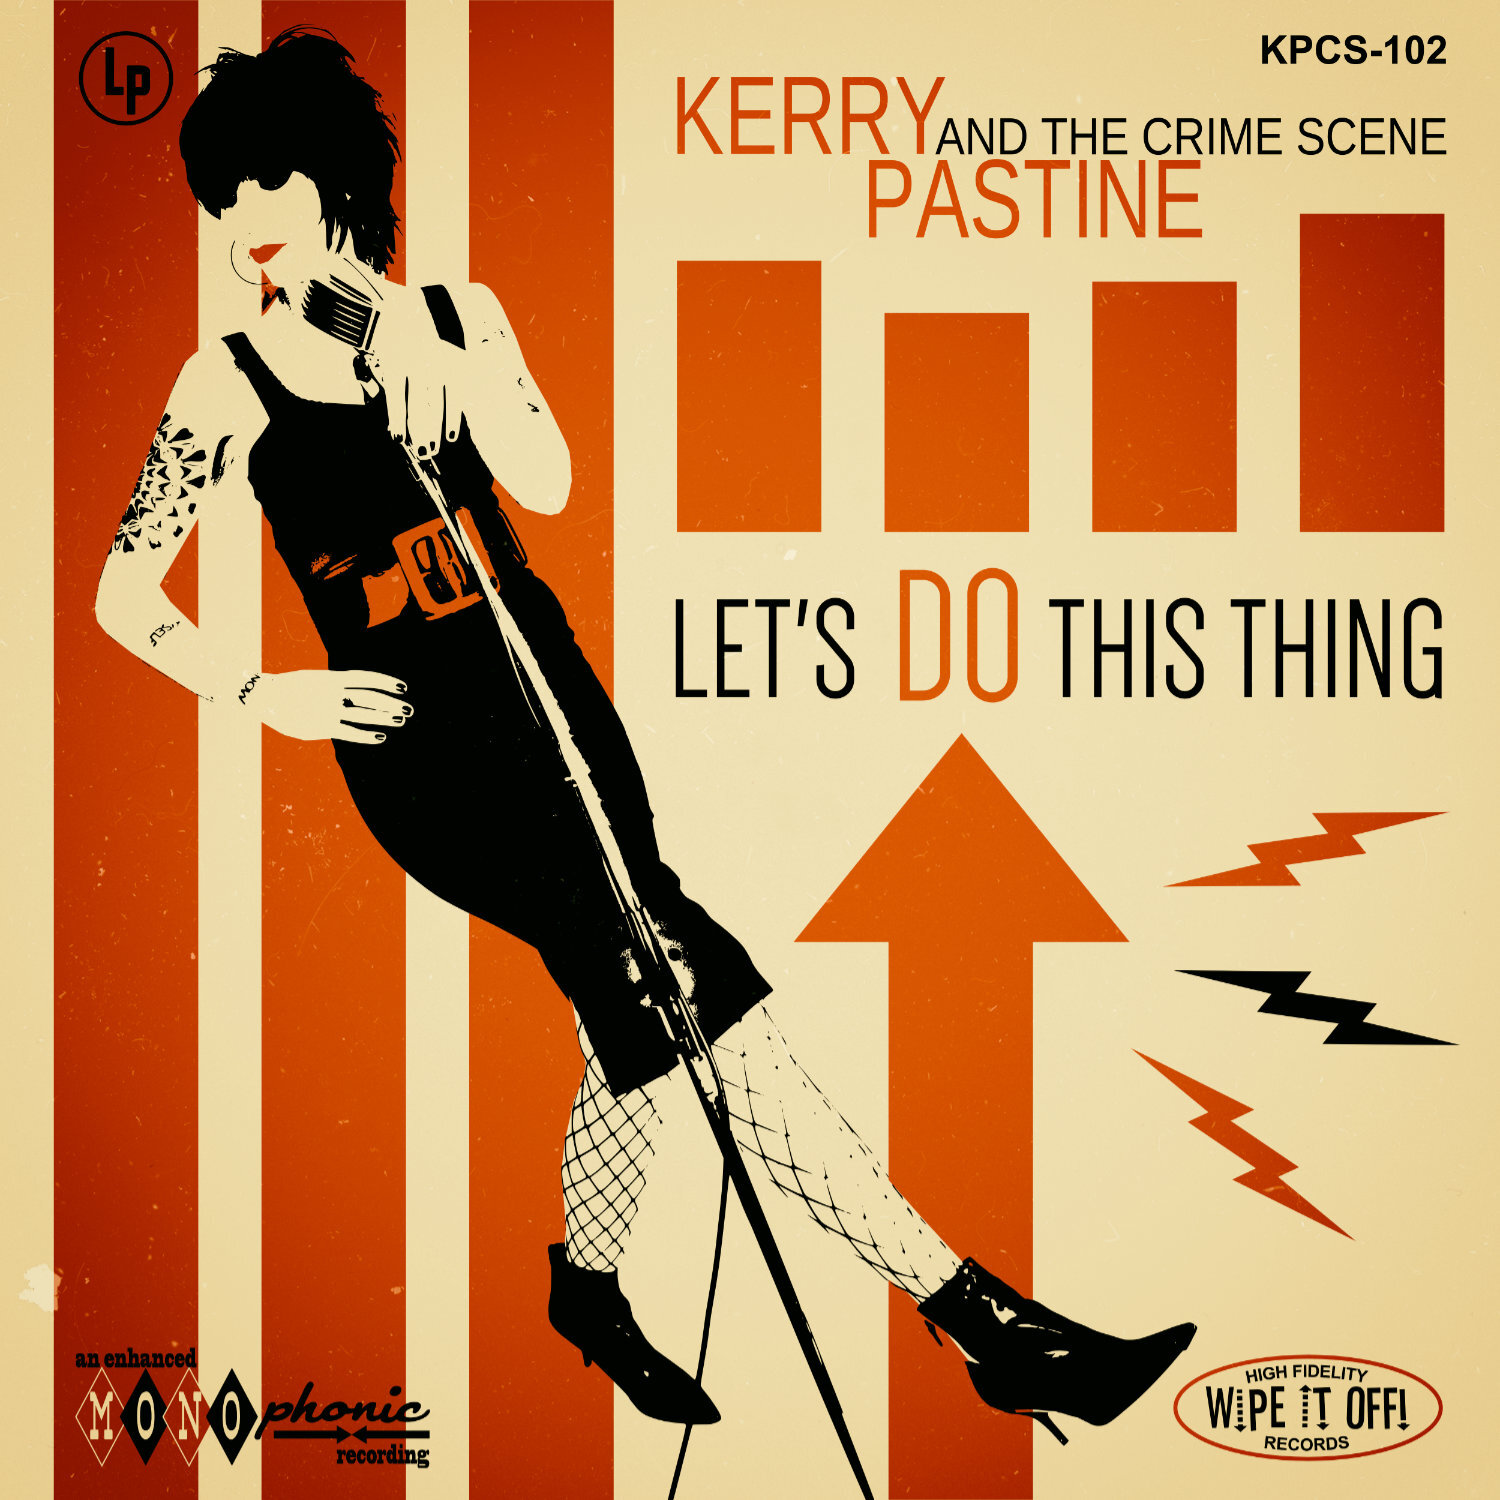 Let's Do This Thing (8/2015) - The barnstorming album that took the roots music scene by storm! Pandora said it best: